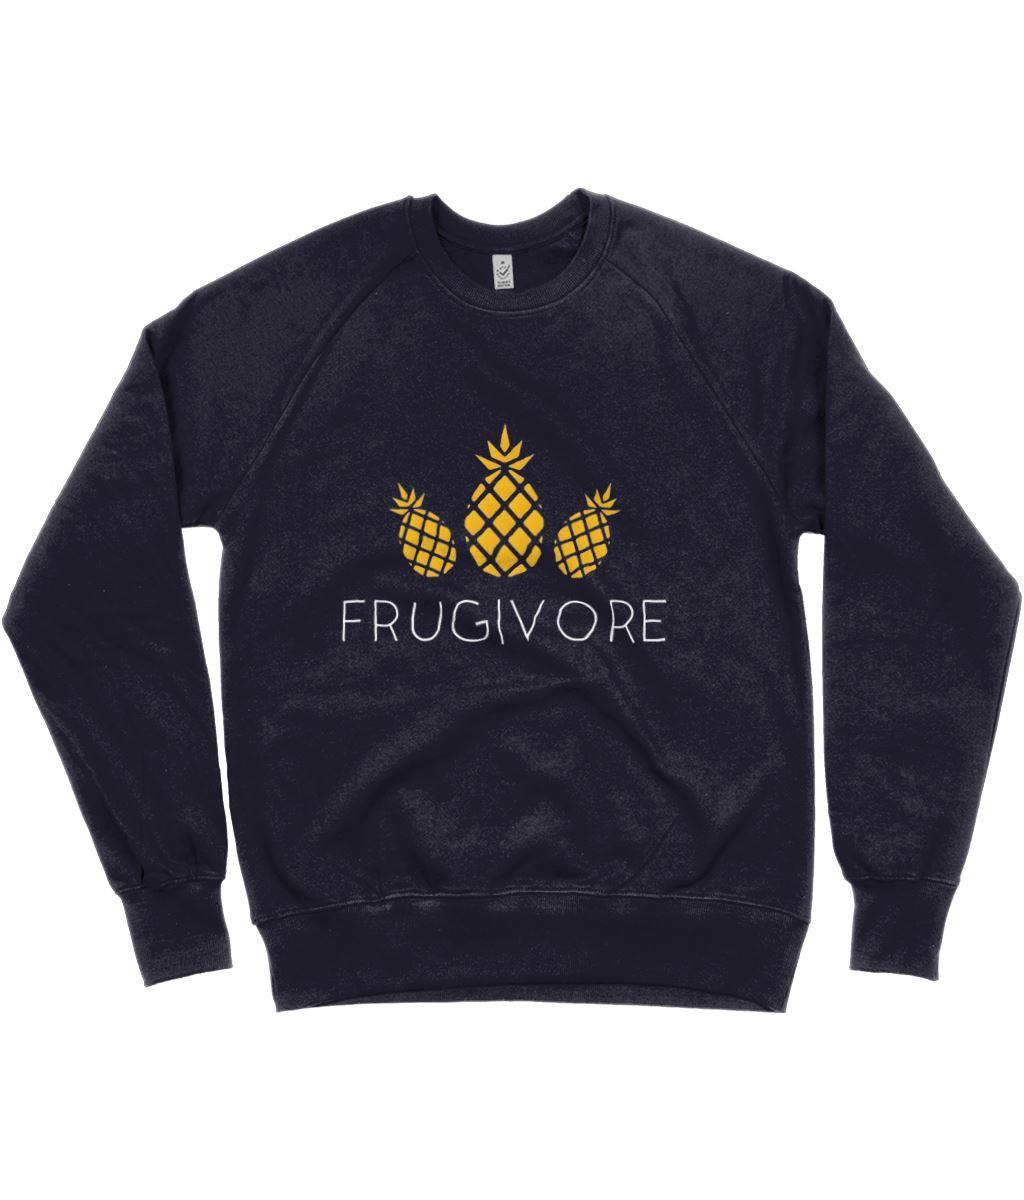 """Frugivore"" Vegan Sweatshirt - 100% Organic Cotton (Unisex) Clothing Vegan Original Navy Small"